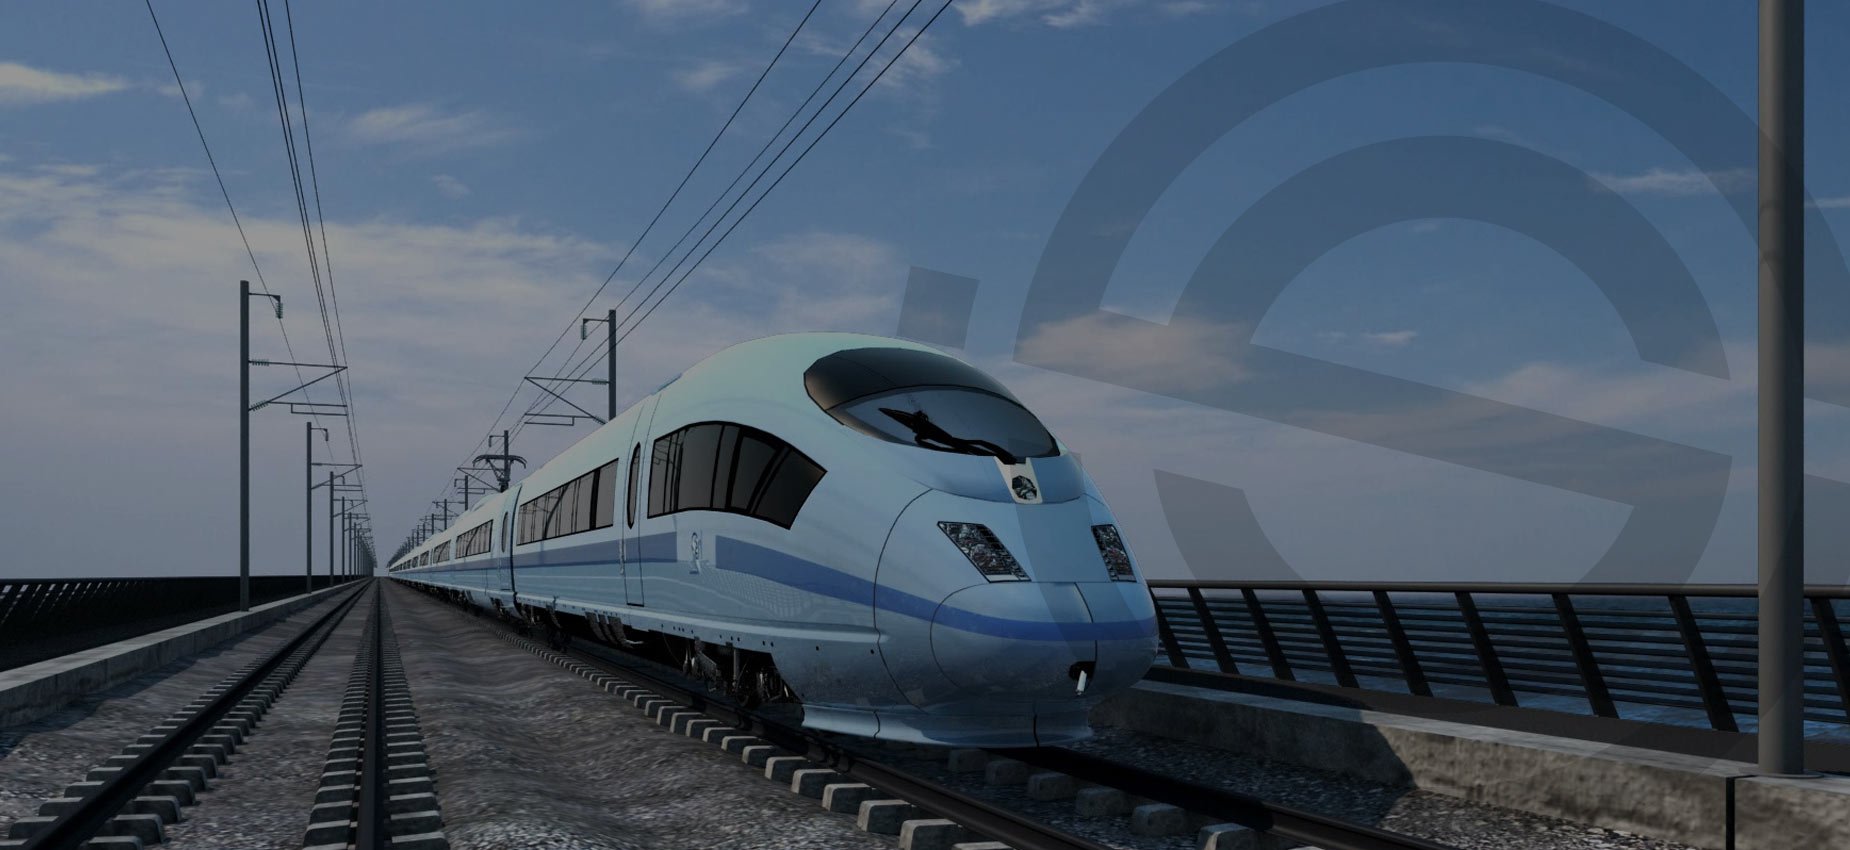 Birmingham to be home to UK's only HS2 connected airport